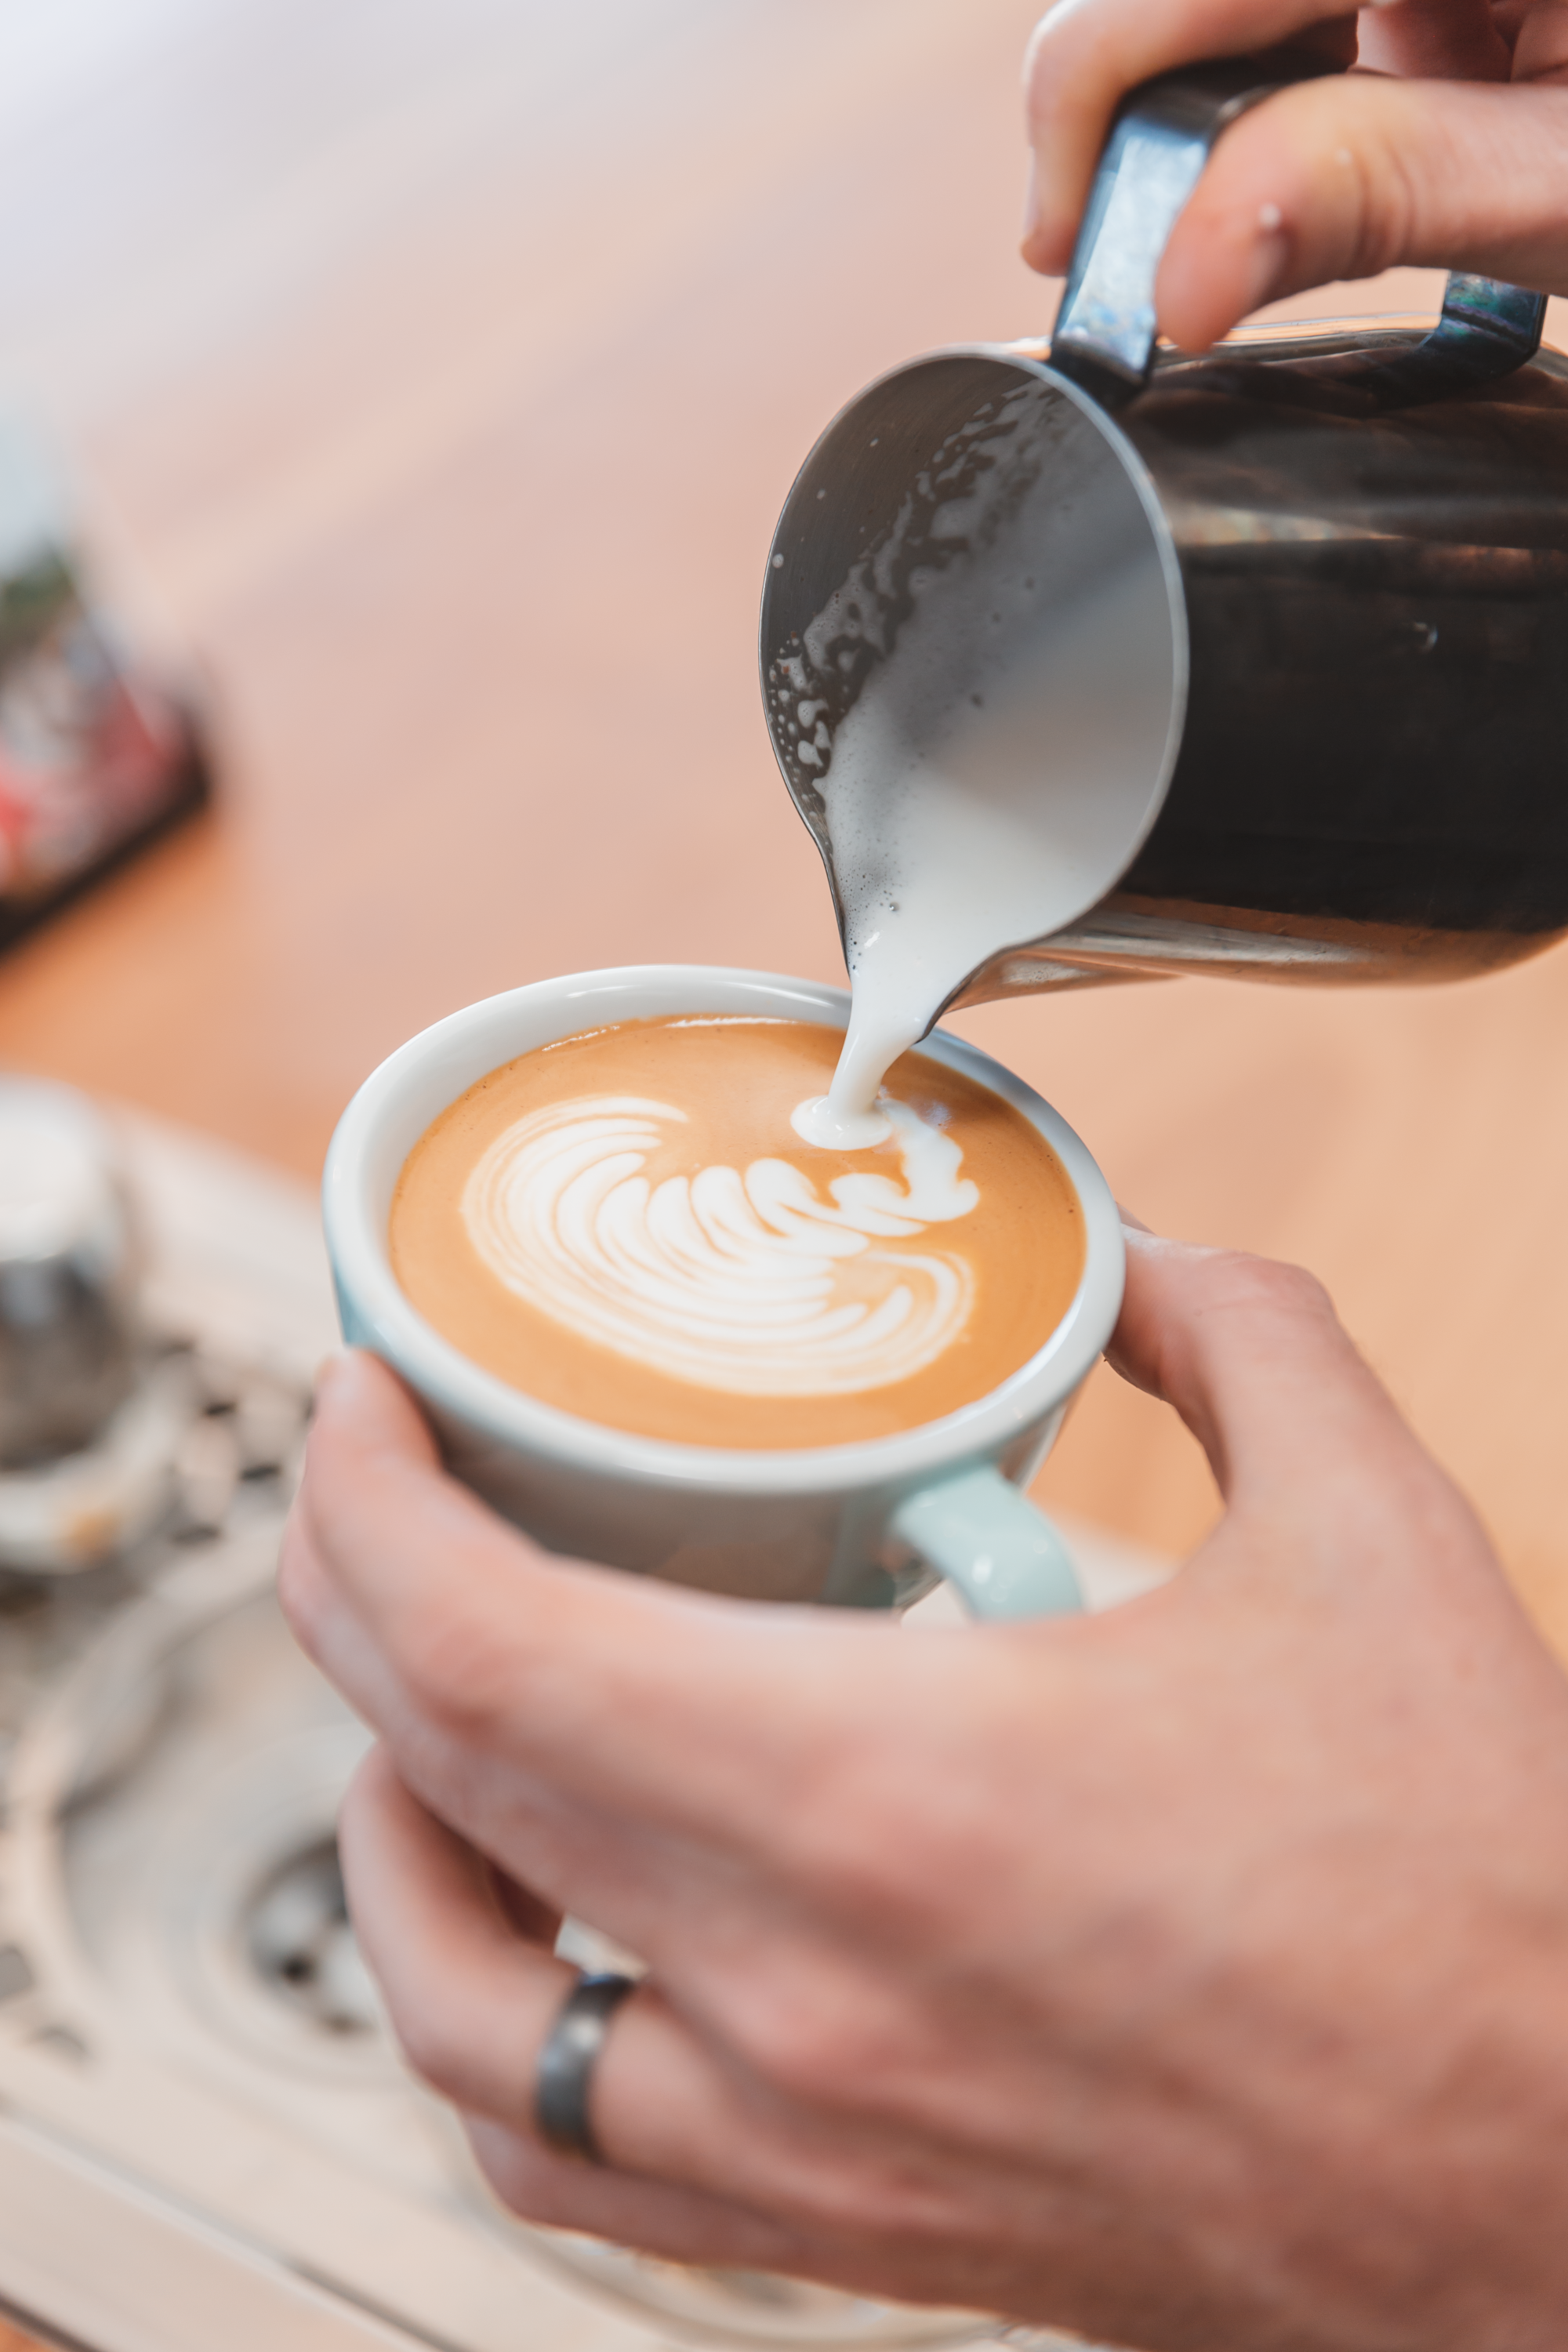 A hand holding a coffee cup and pouring milk into an artsy shape in the crema.